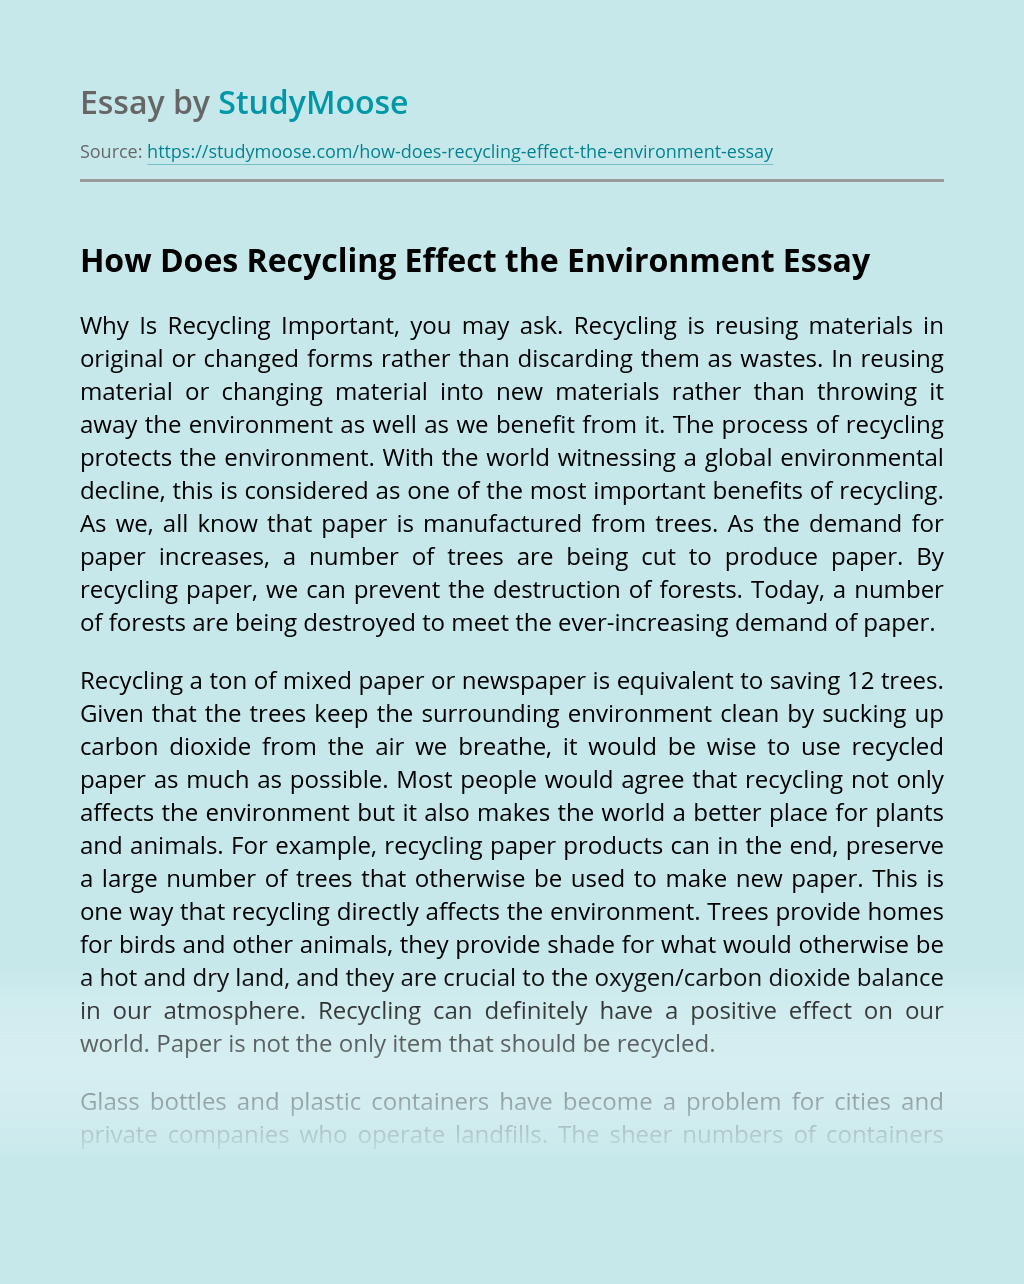 How Does Recycling Effect the Environment